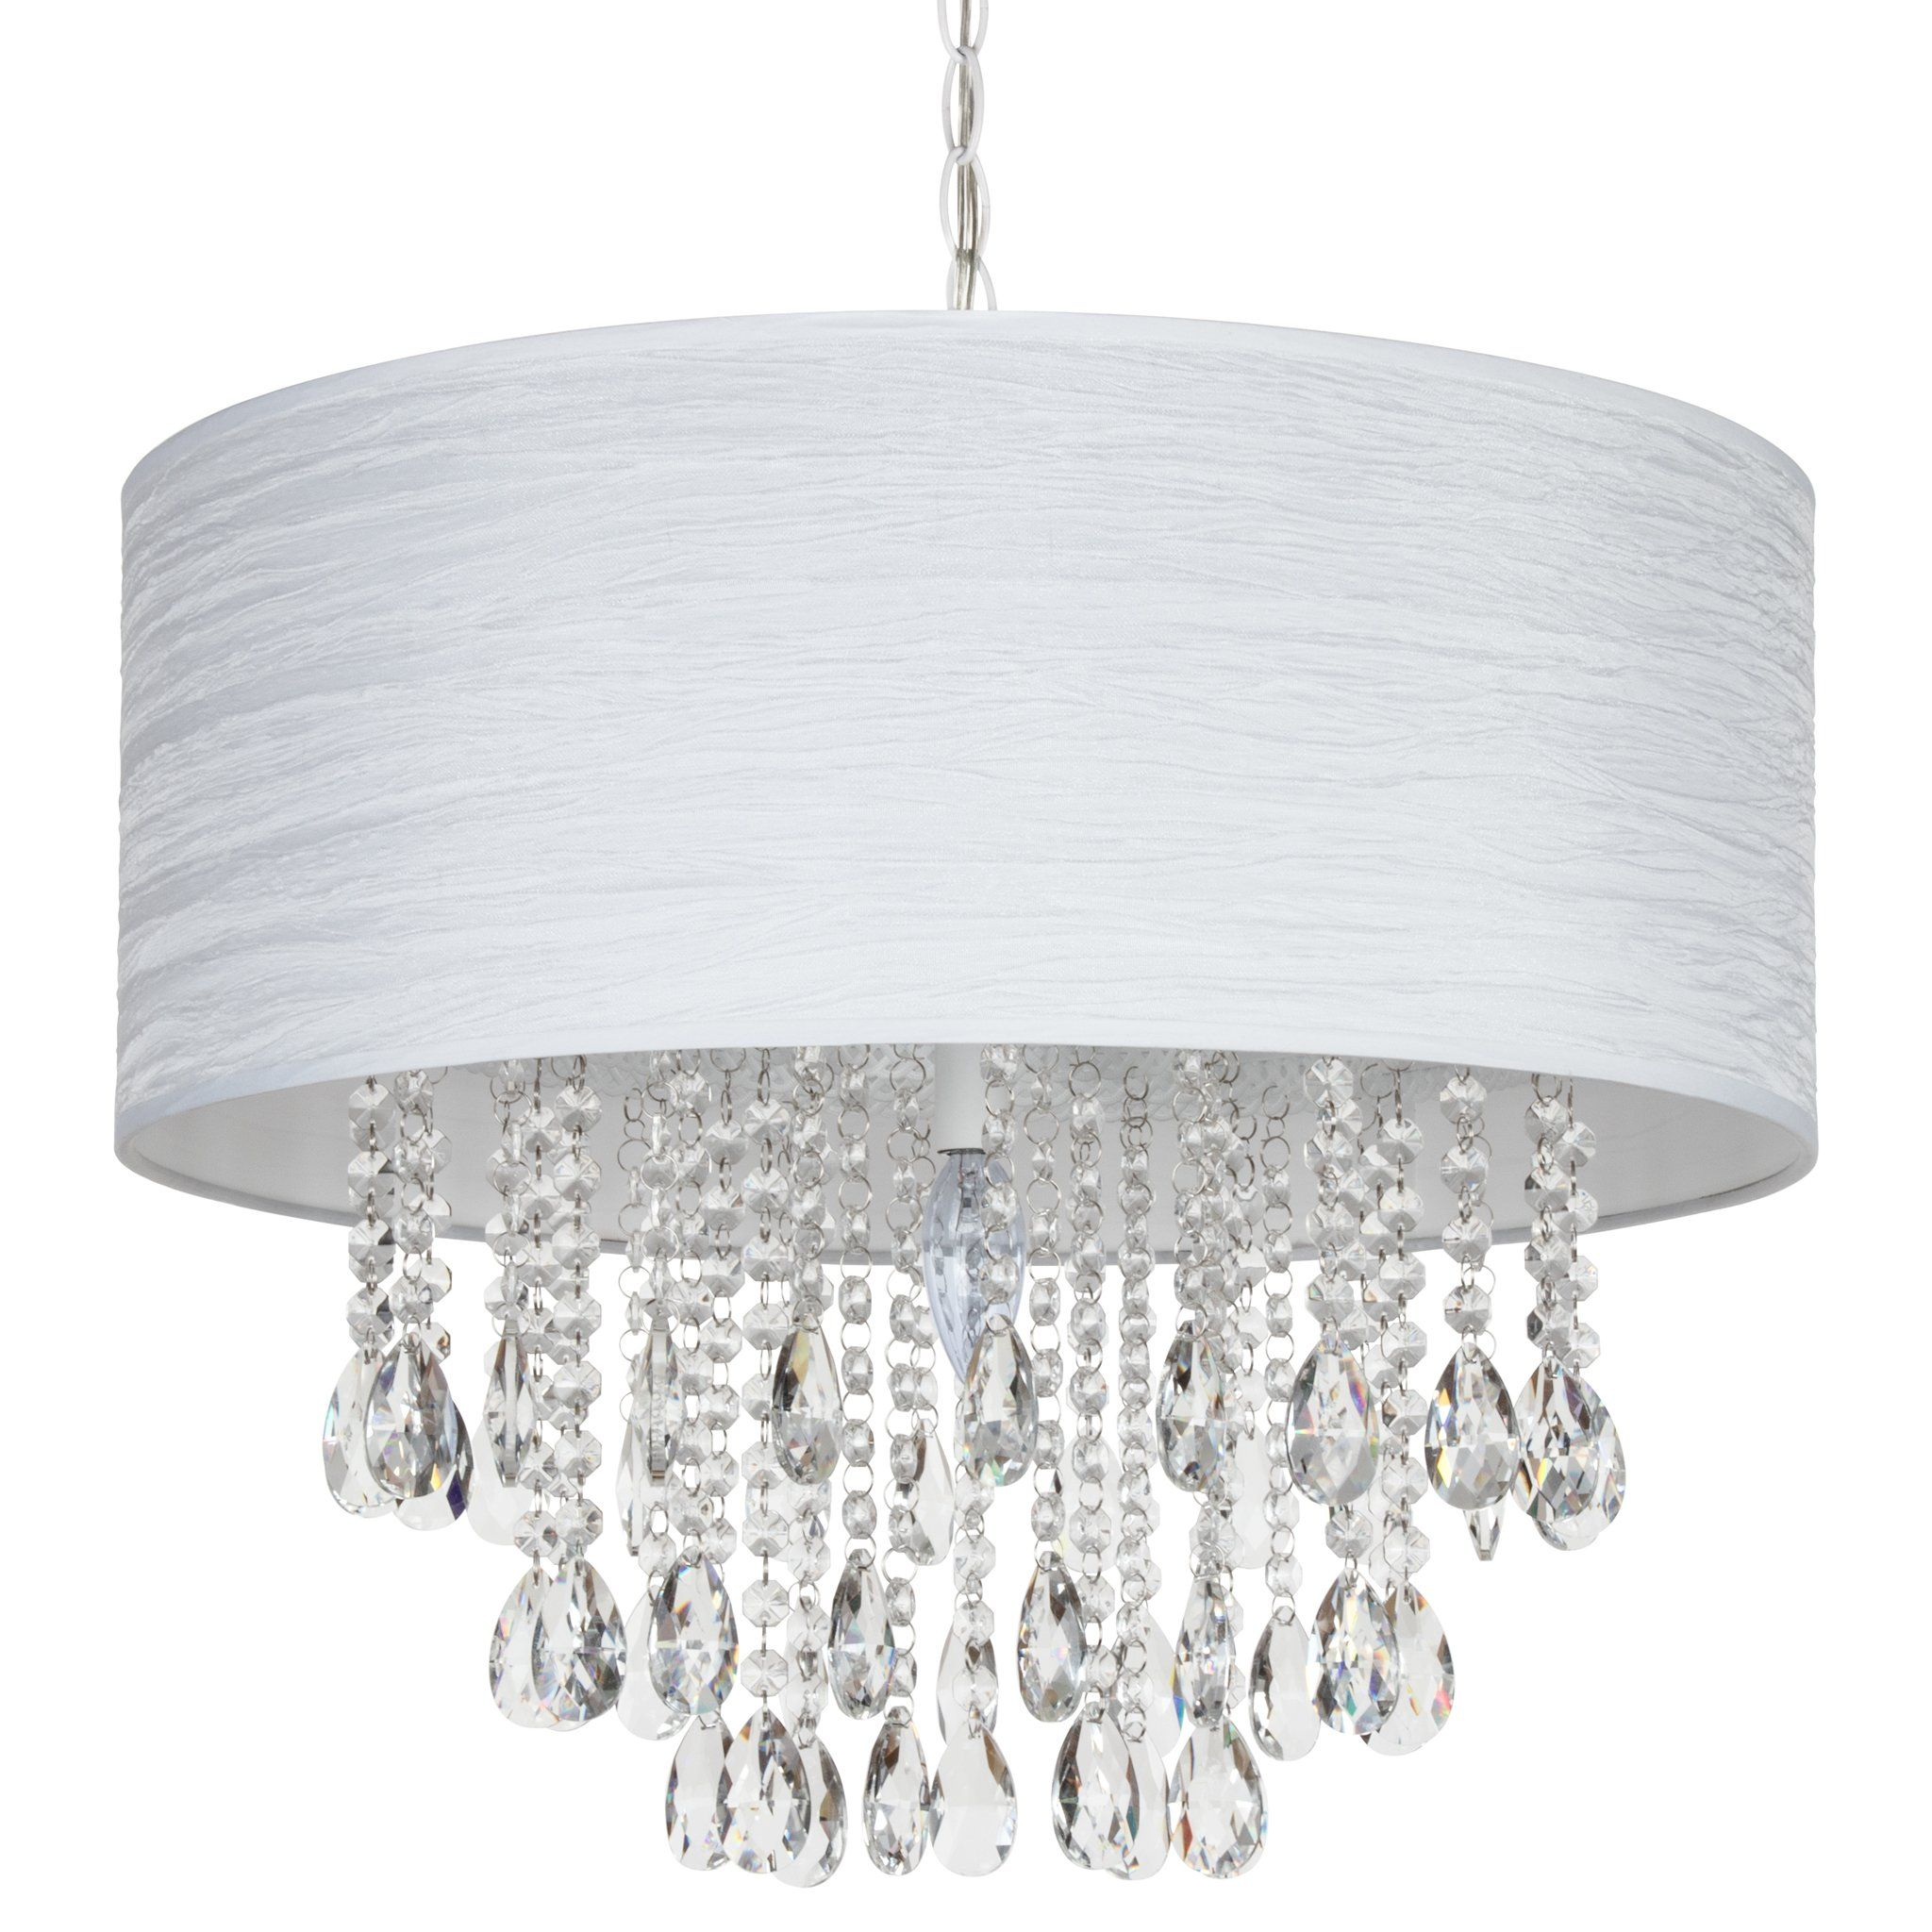 Large 5 Light Crystal Plug In Chandelier With Cylinder Shade White Plug In Chandelier Hanging Ceiling Lamps Glass Pendant Light